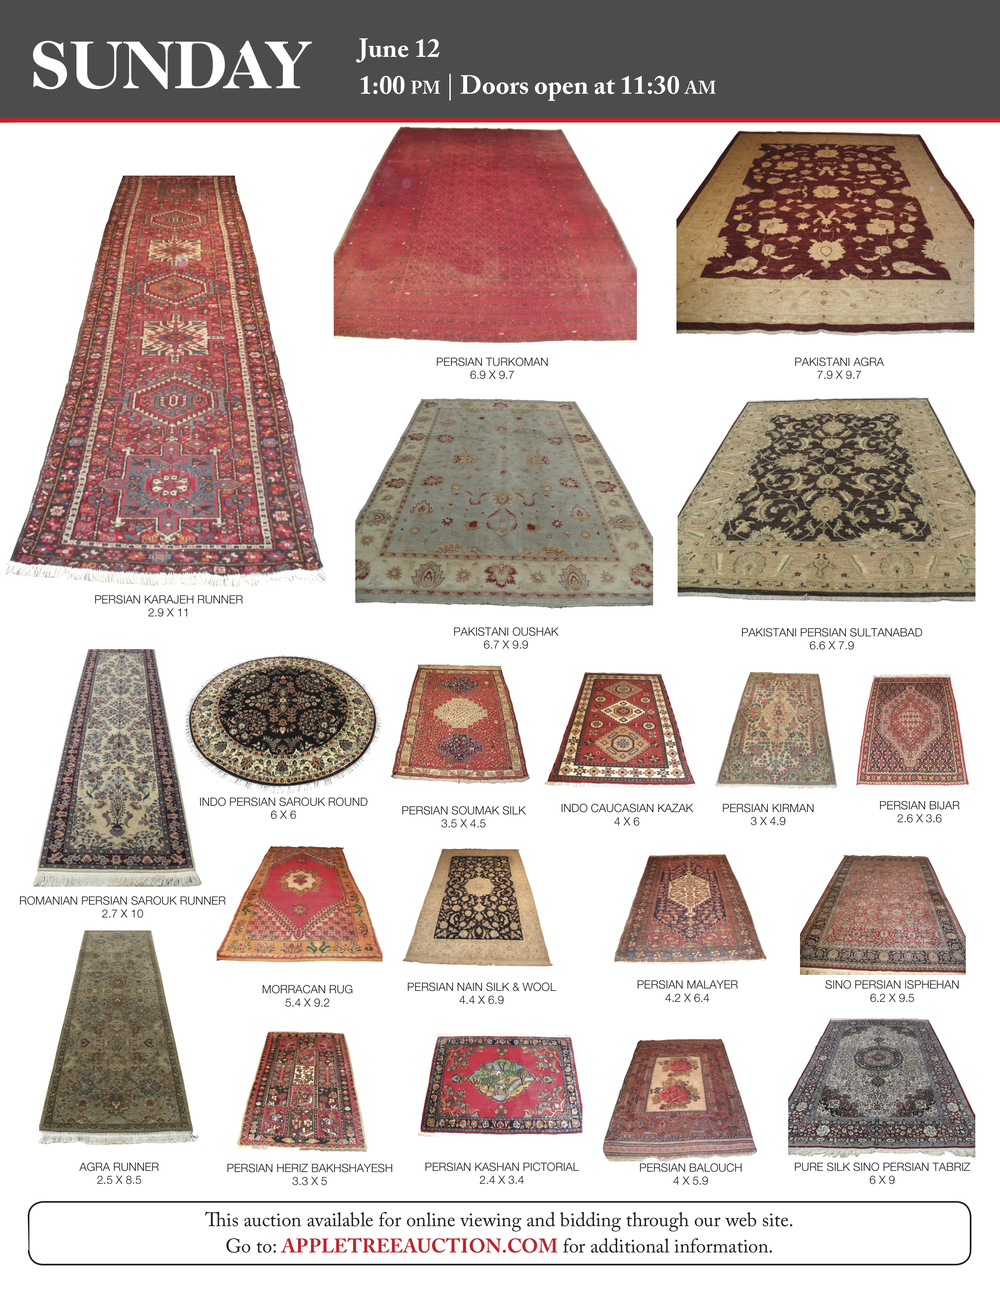 June Oriental Rug Flyer 16 high res_3.jpg